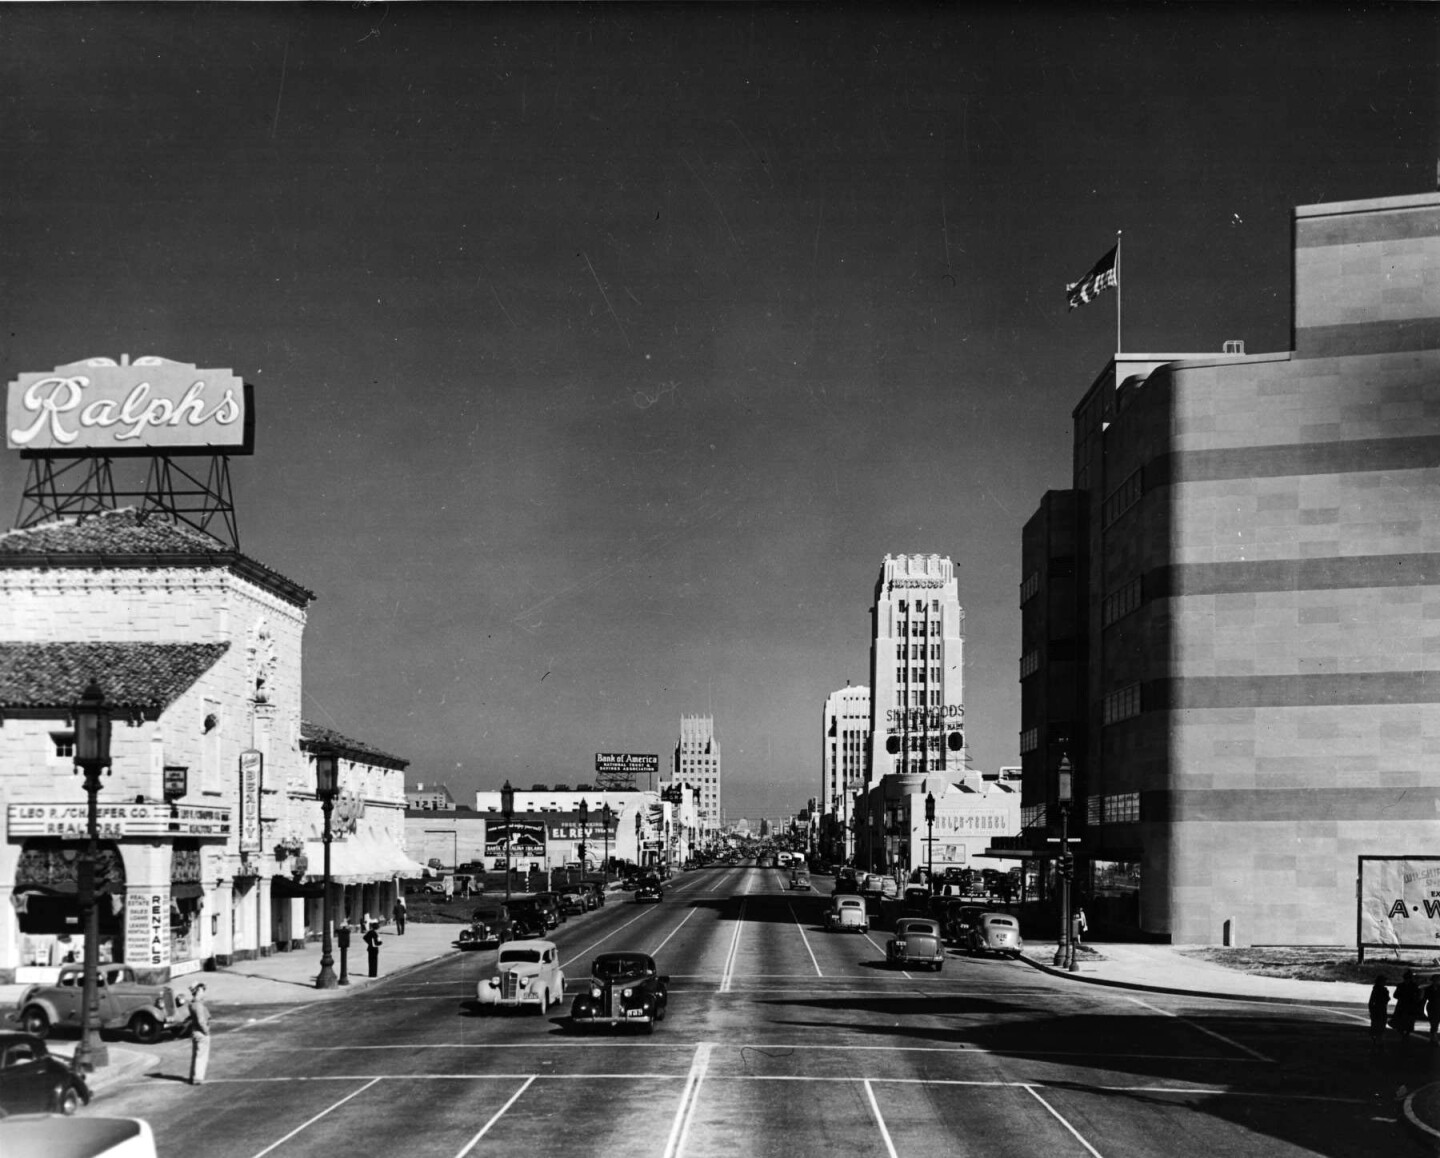 Circa 1940 view of the Miracle Mile, facing east. Courtesy of the Dick Whittington Photography Collection, USC Libraries.